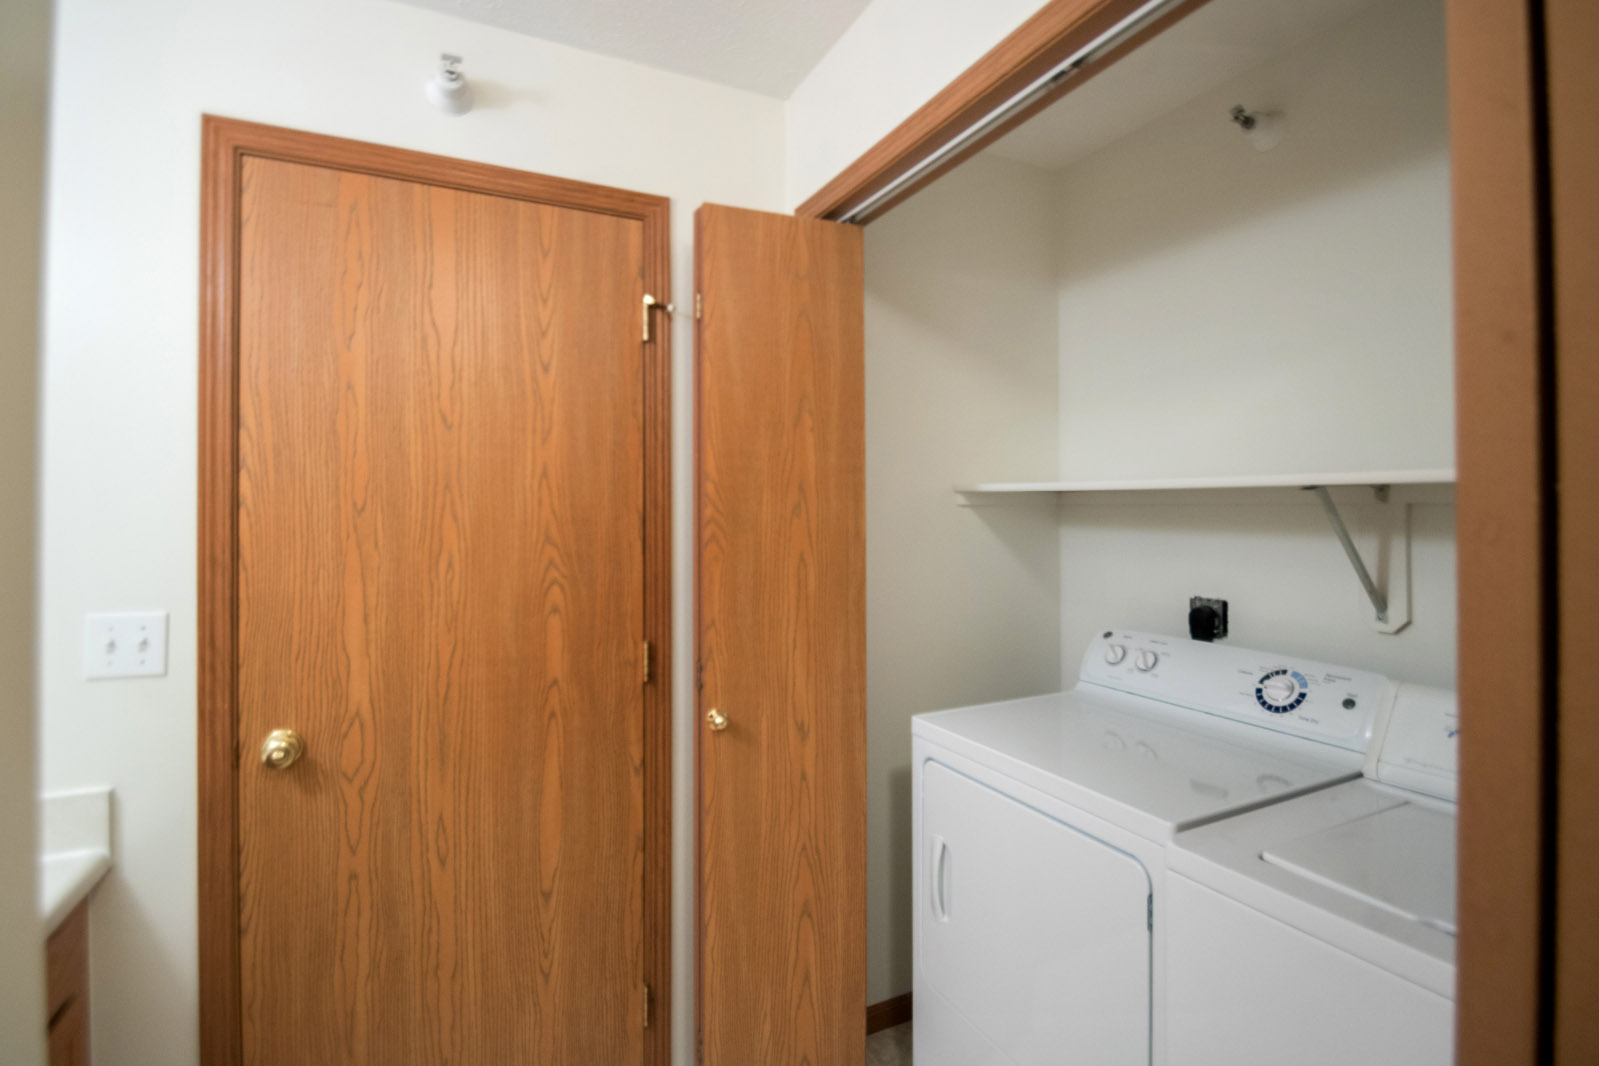 Washer and Dryer at Northridge Apartments in Gretna, Nebraska